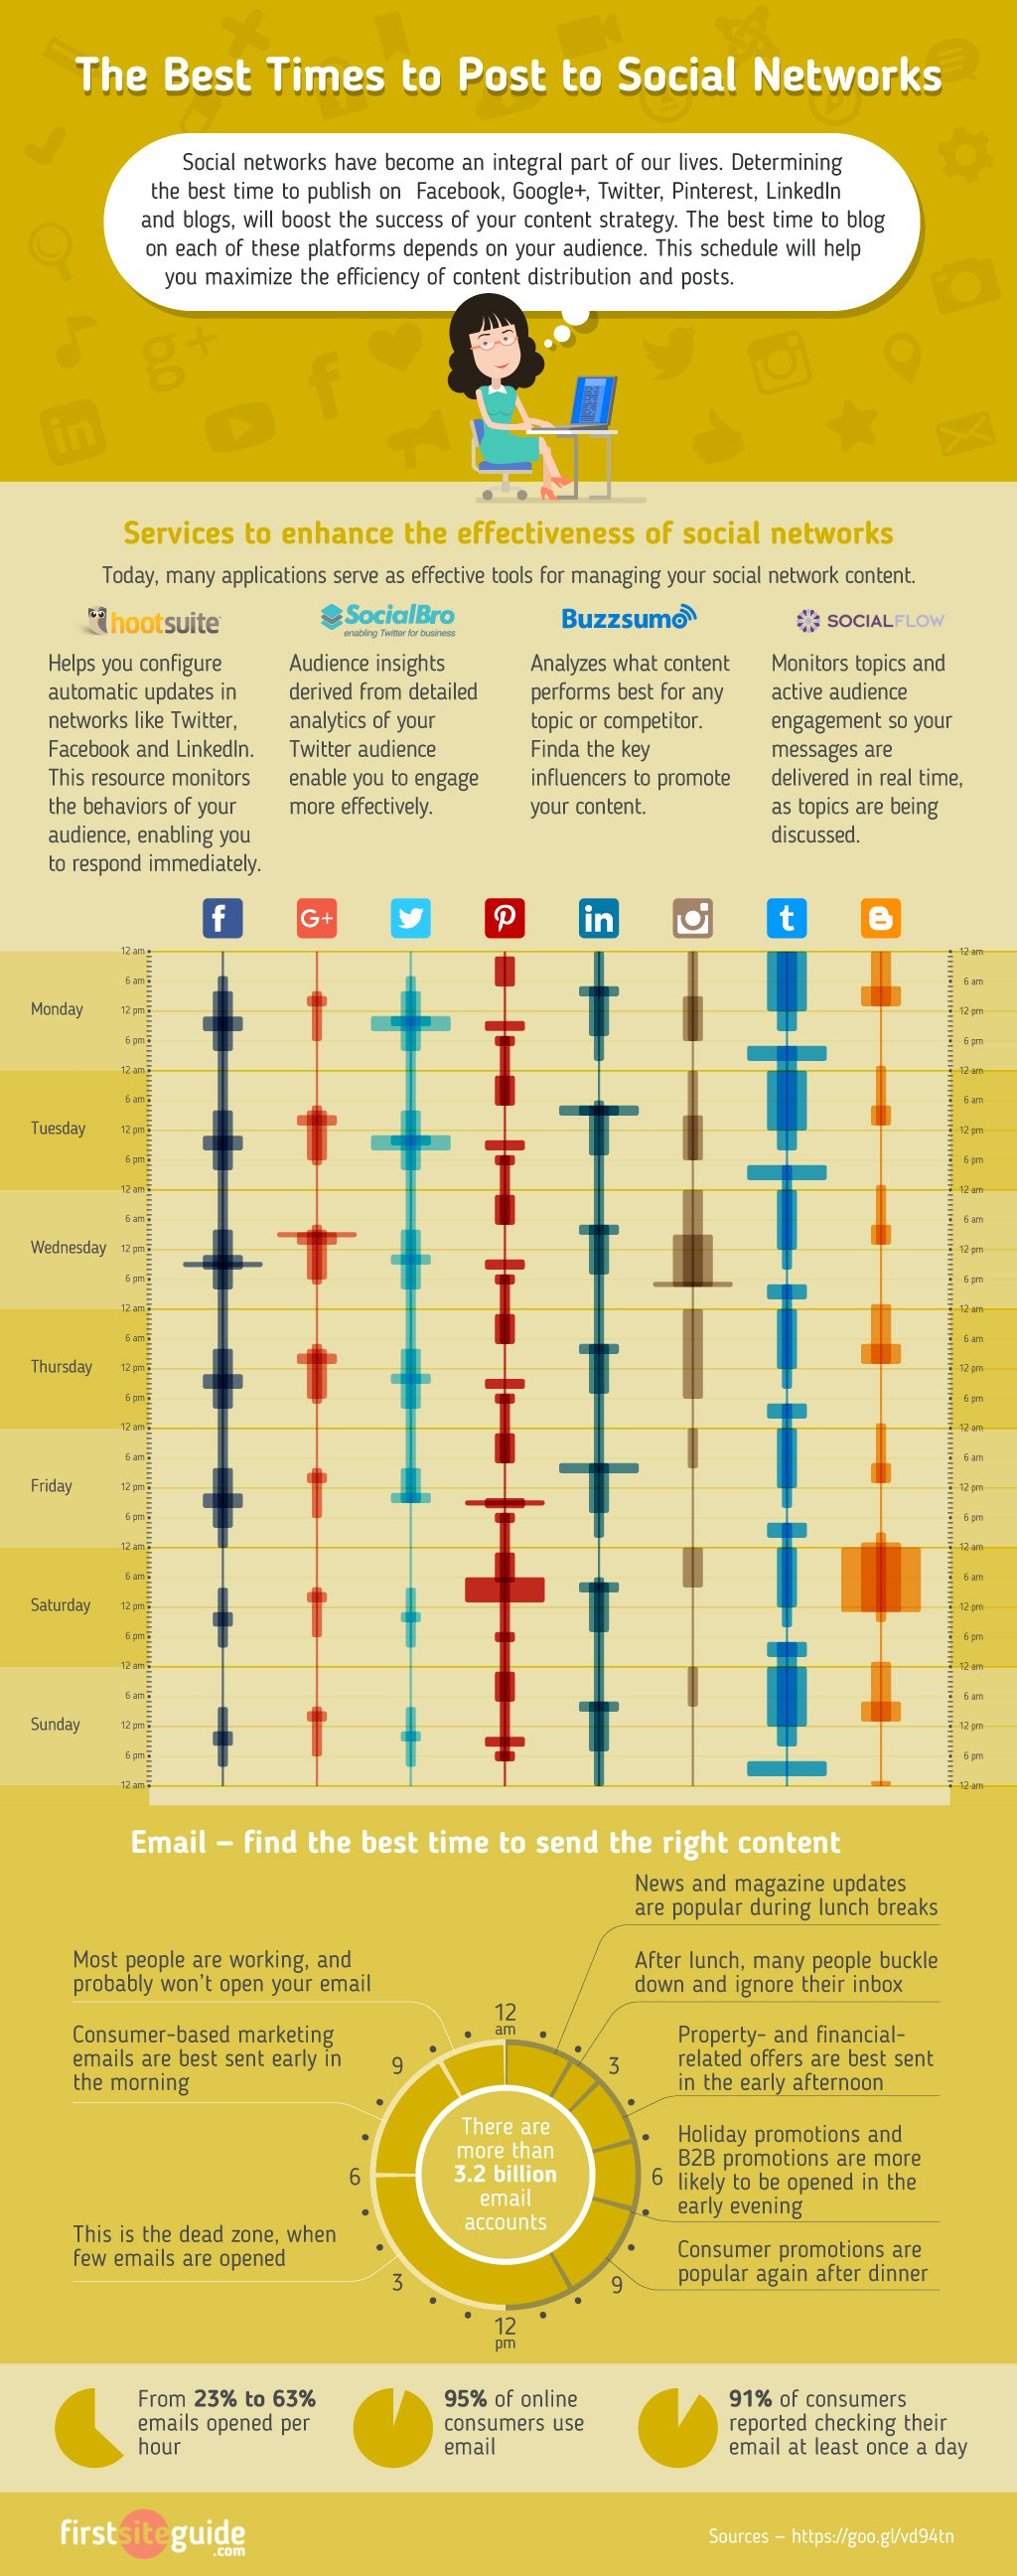 Most Popular Social Networking Sites of the World